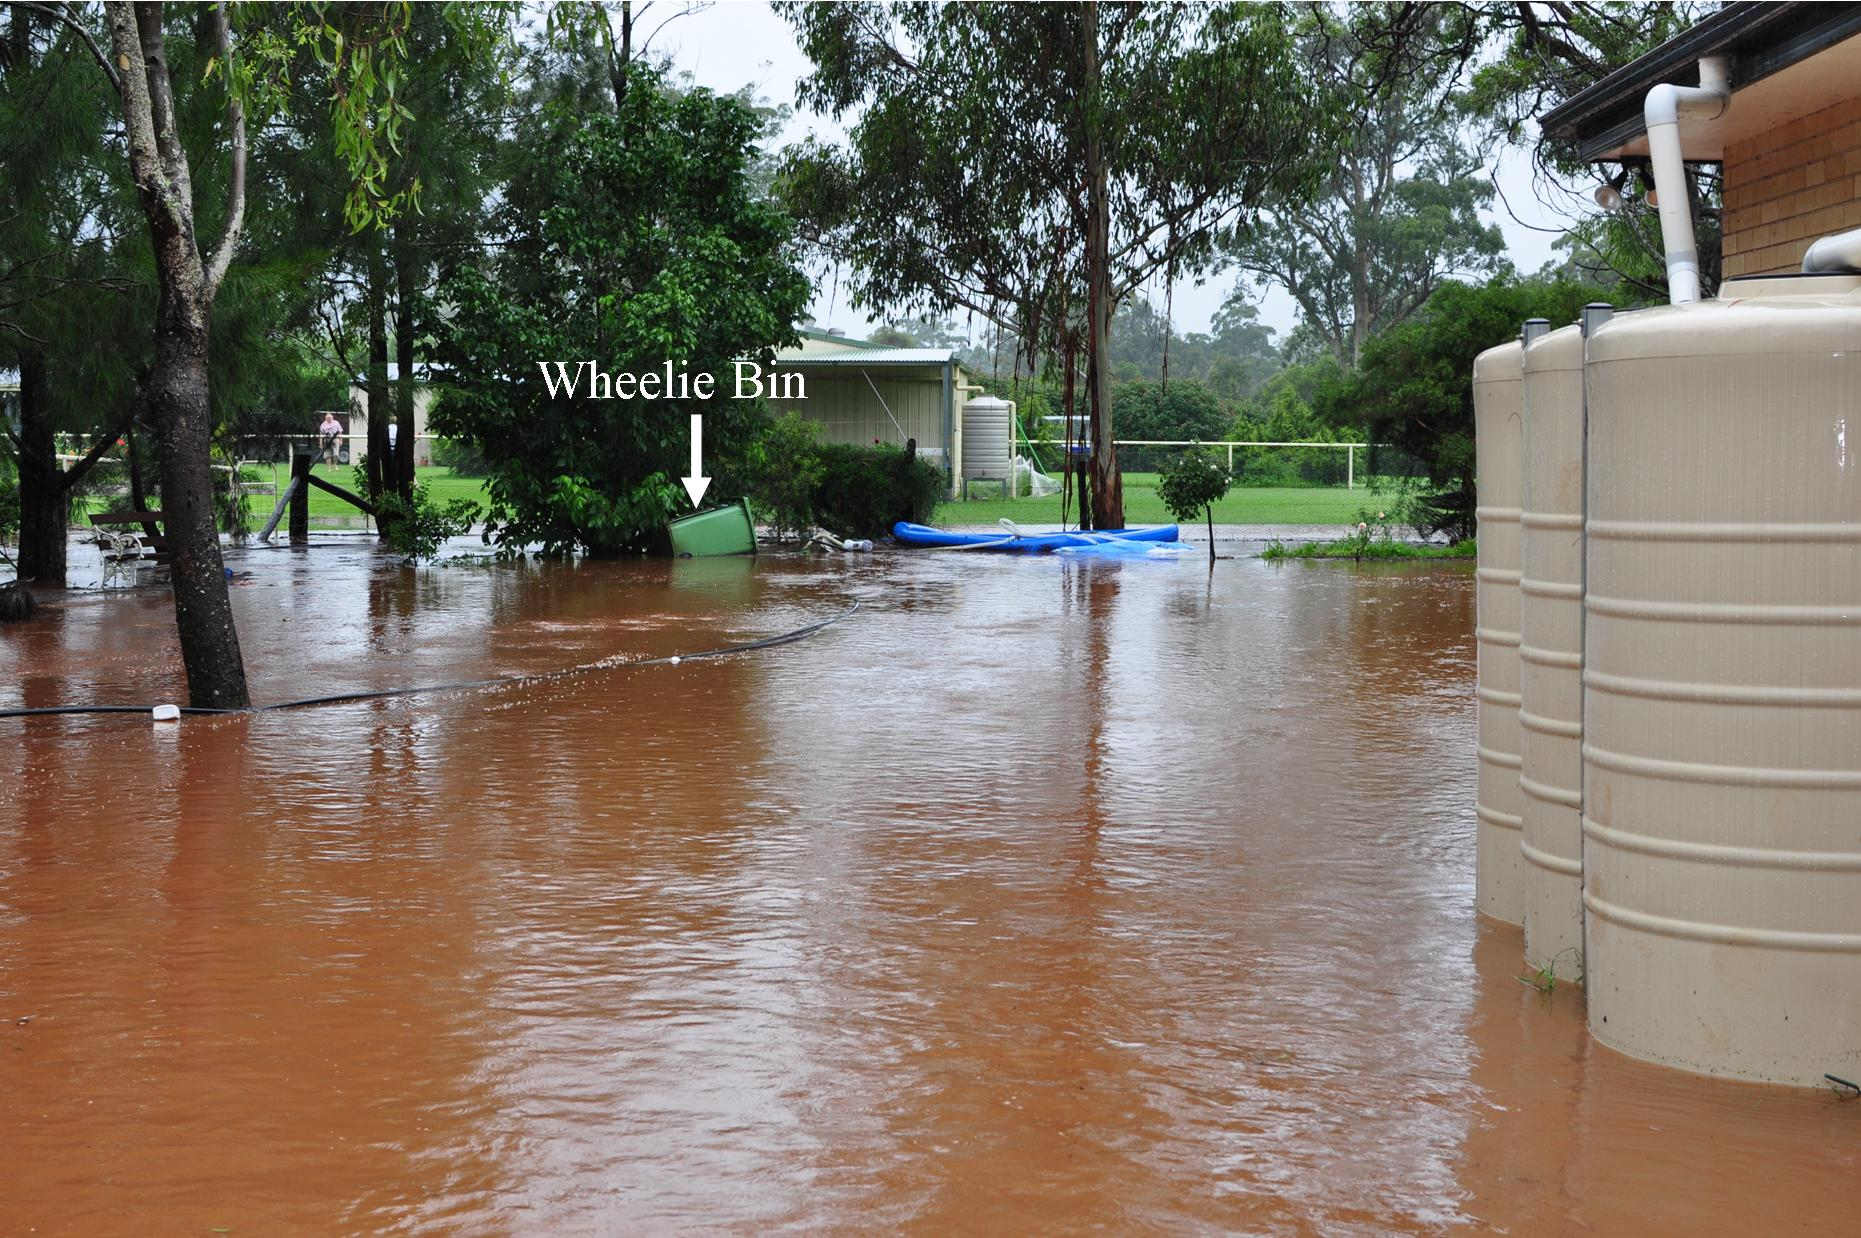 effects of queensland floods in 2011 The 2010–11 queensland floods were a series of floods in australia which began in december 2010 and ended in january 2011 the majority of the floods were in queensland including its capital city, brisbane.